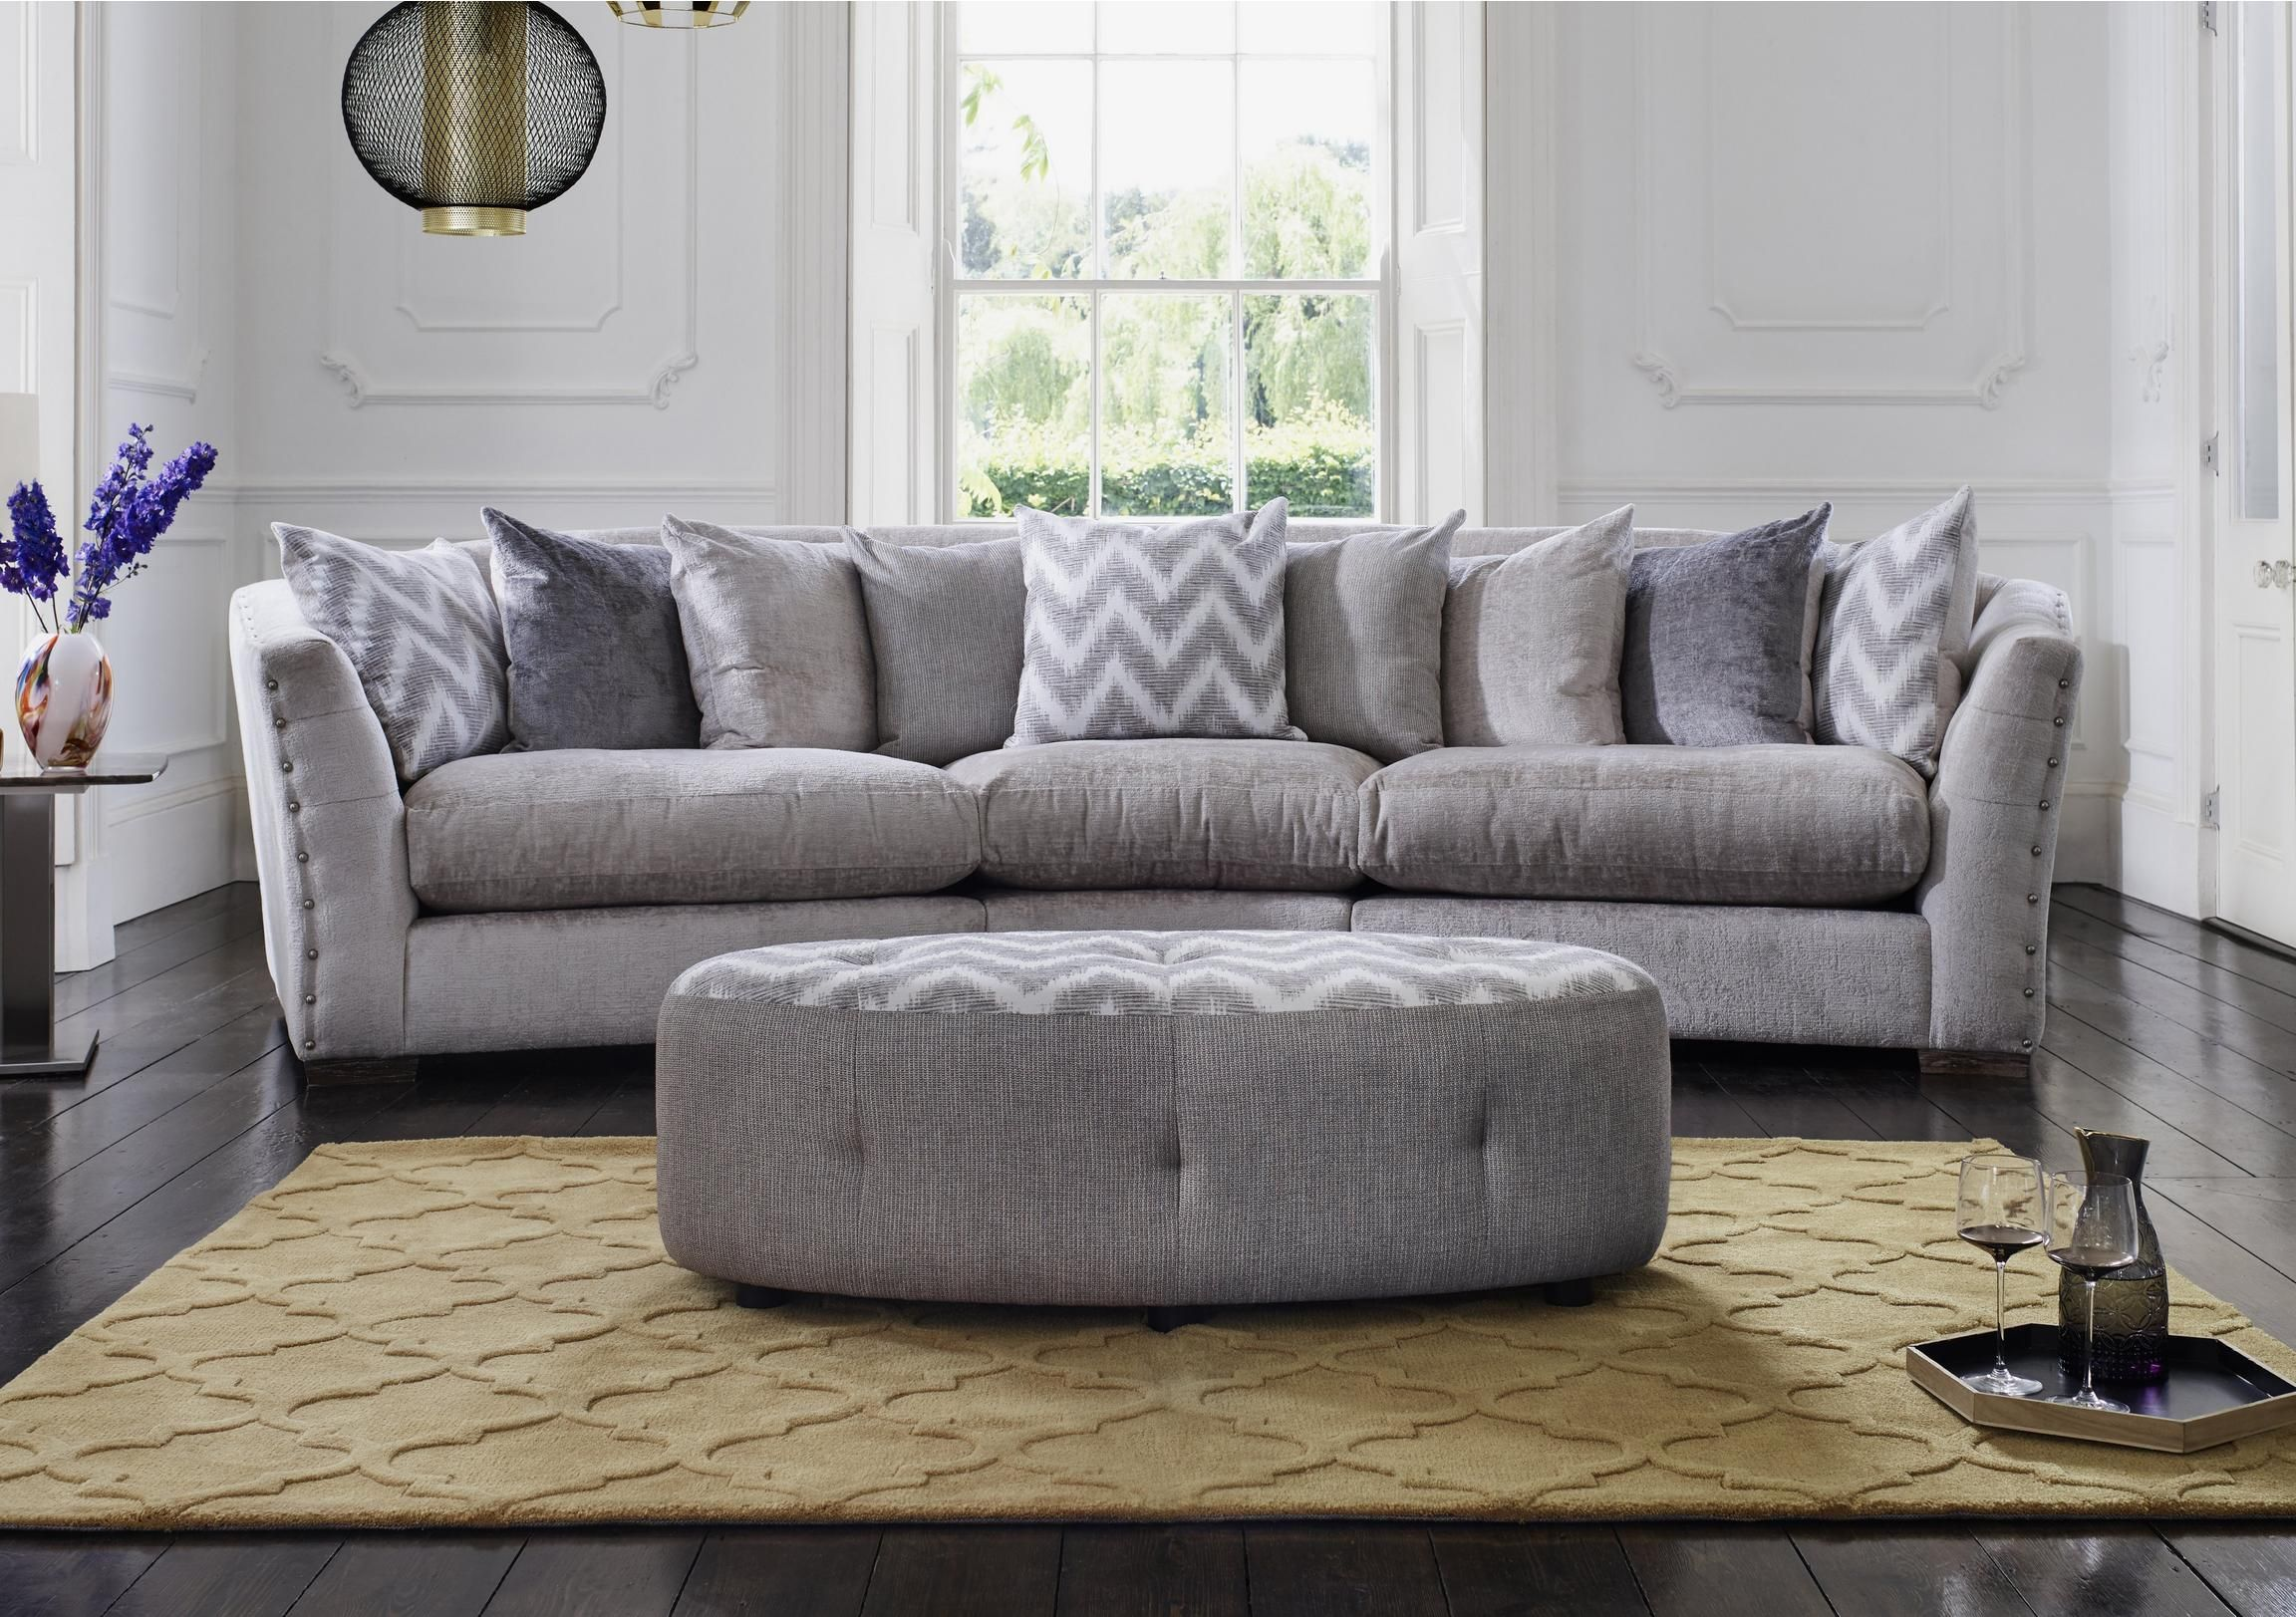 Standspiegel Erle Sofa From Furniture Village